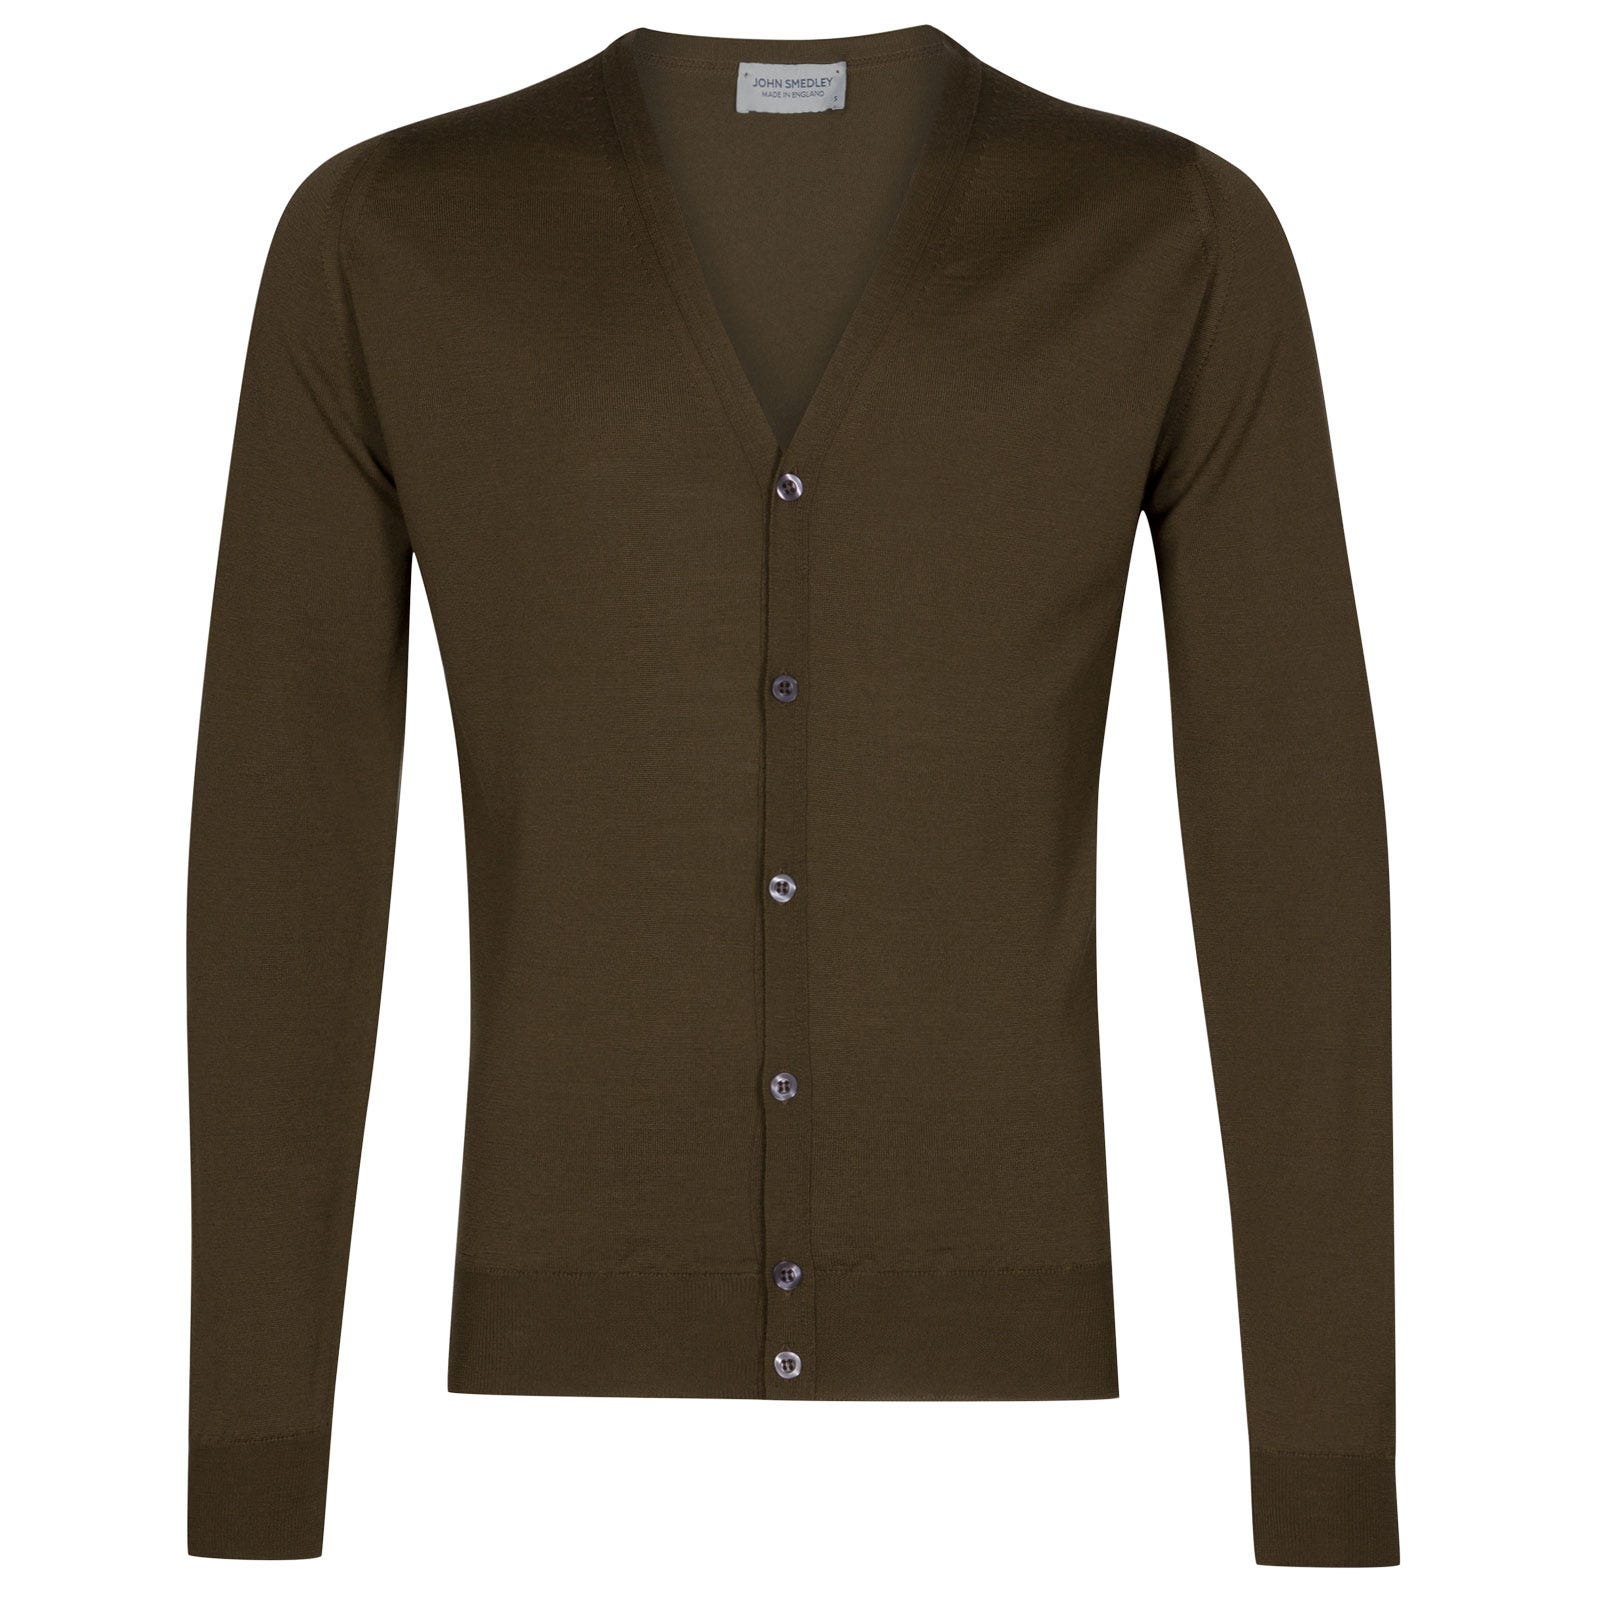 John Smedley petworth Merino Wool Cardigan in Kielder Green-XL